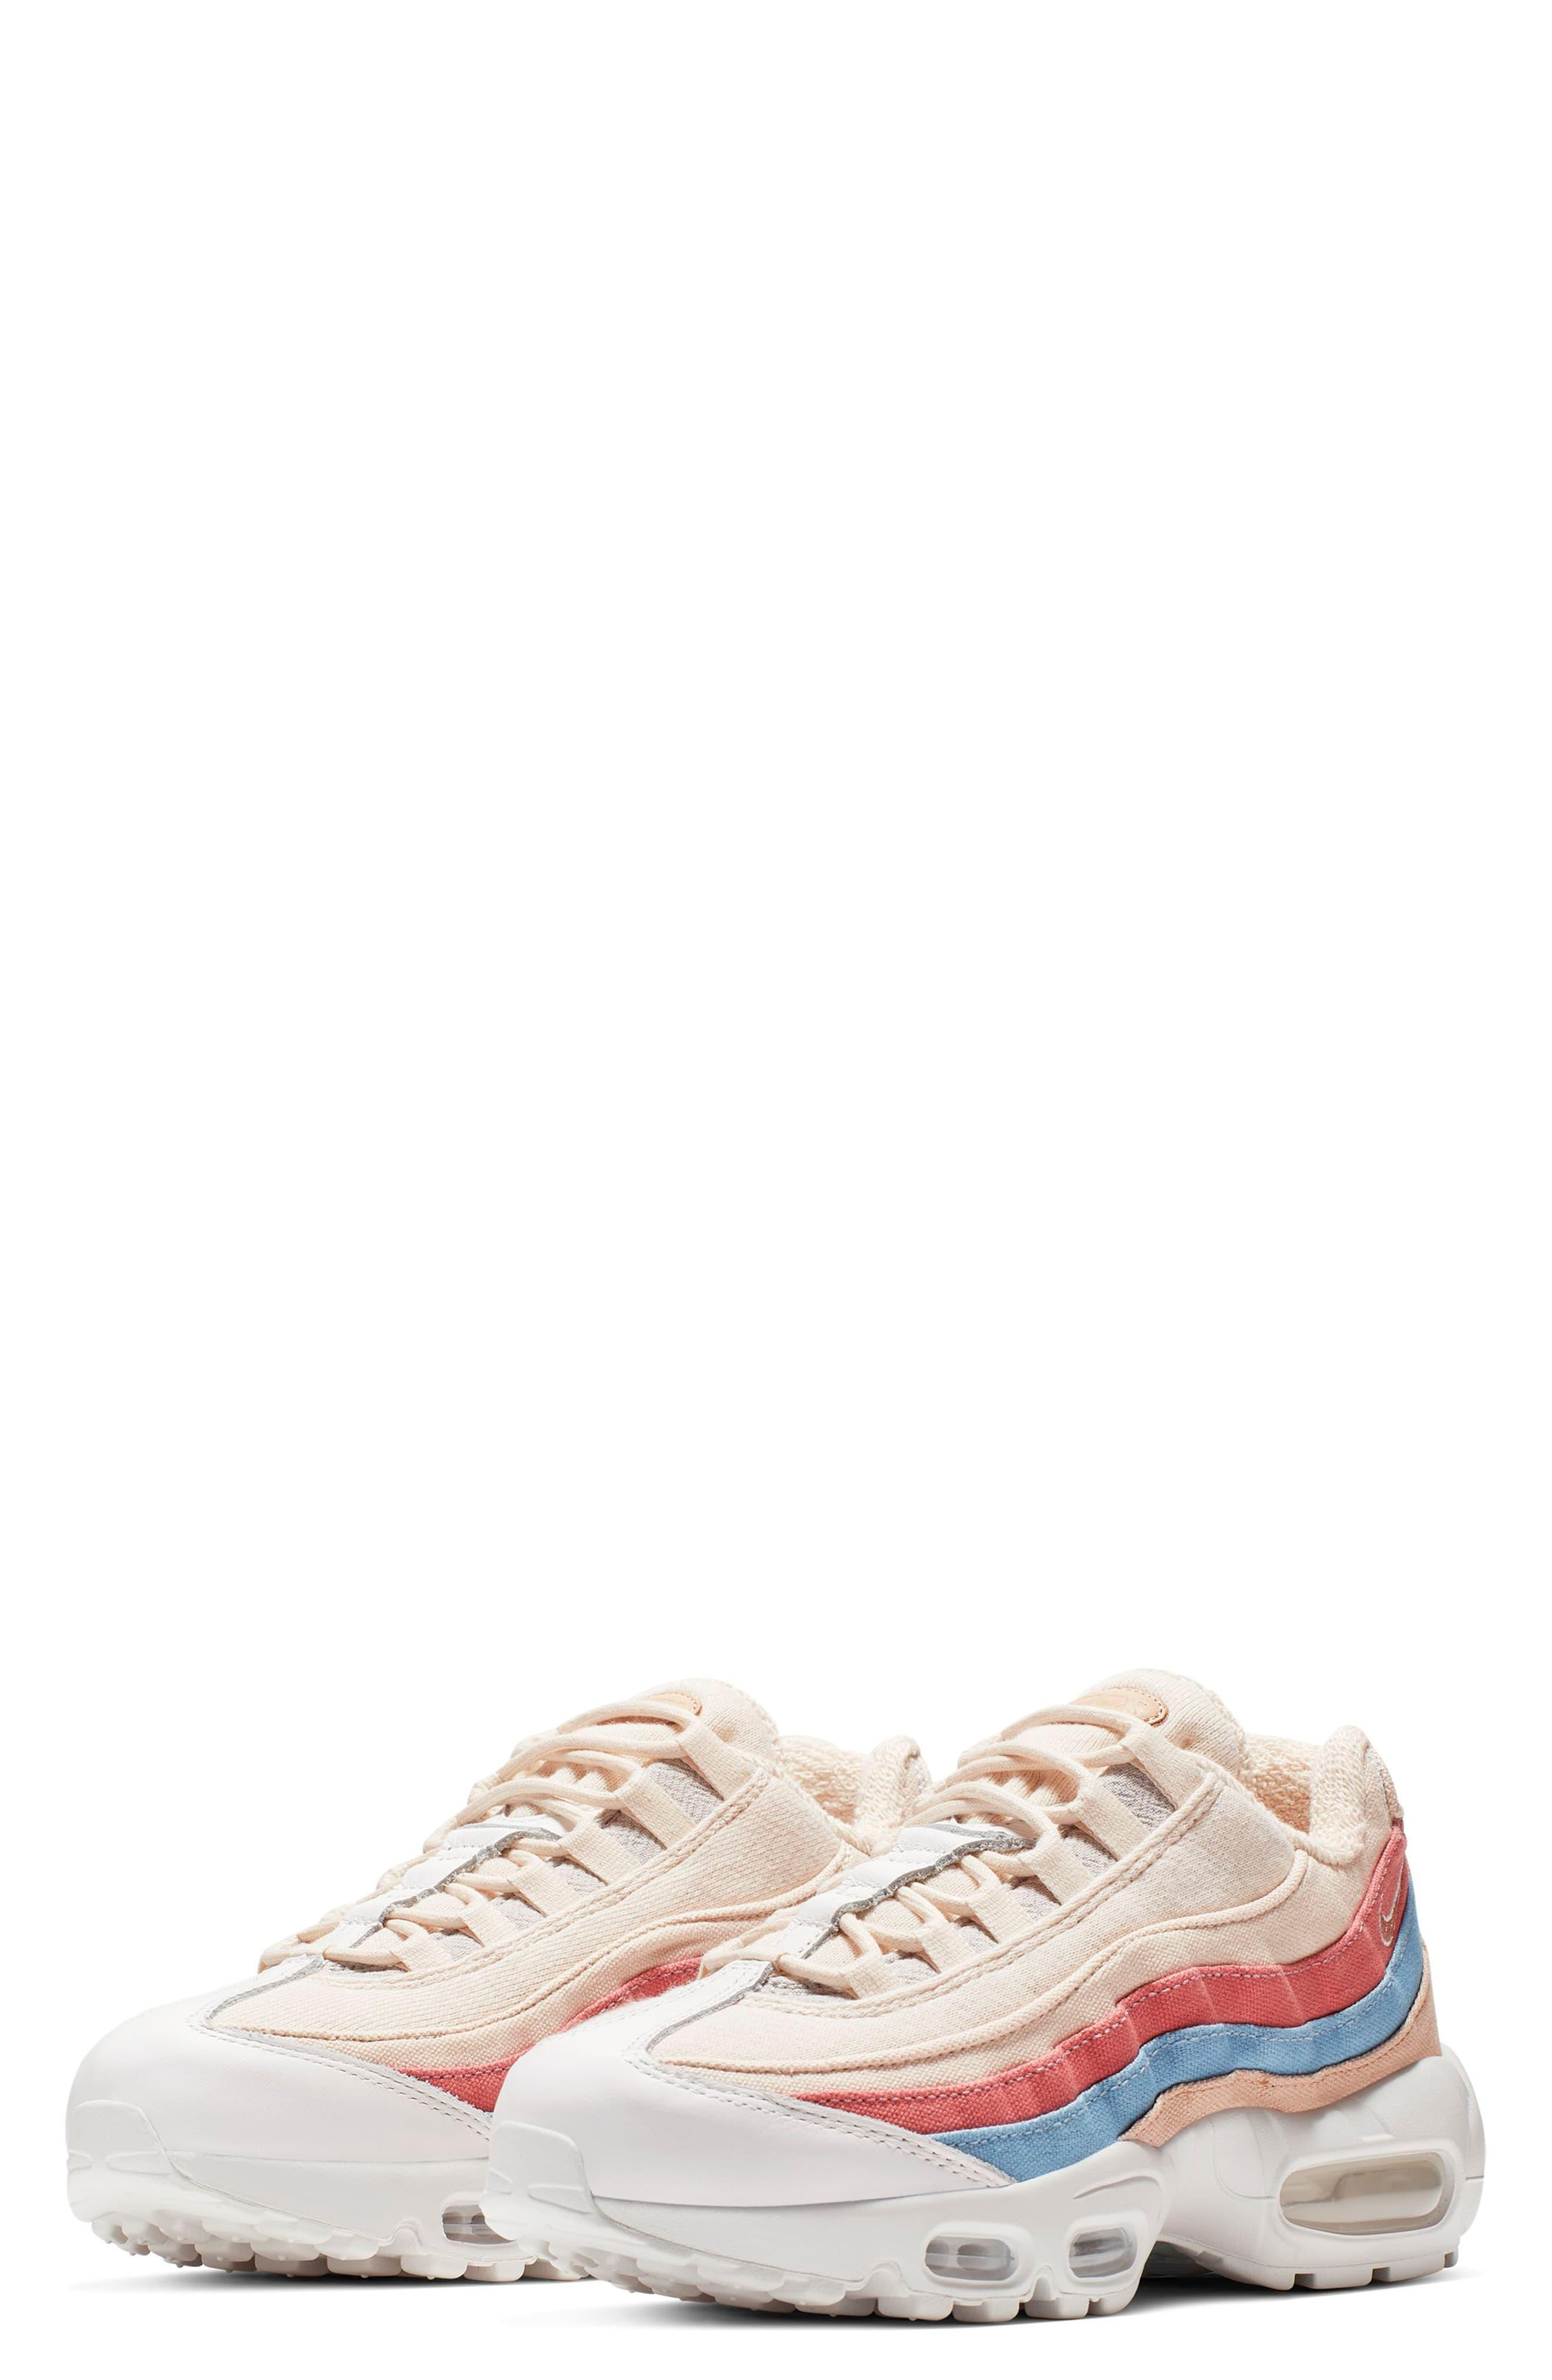 women's air max 95 plant color collection